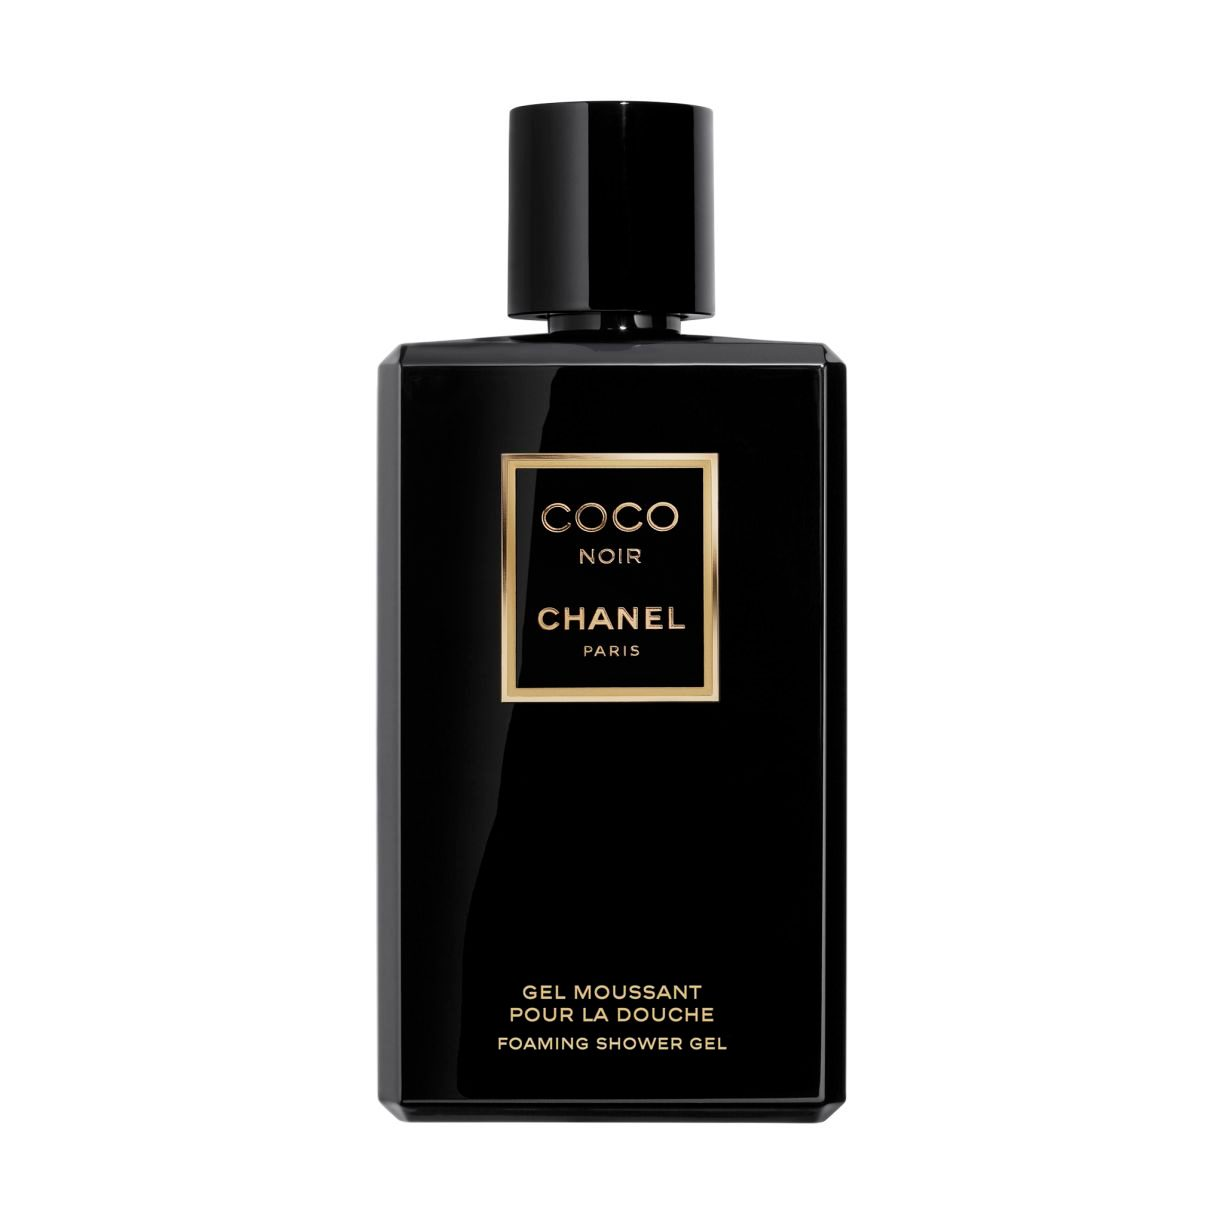 COCO NOIR FOAMING SHOWER GEL 200ML